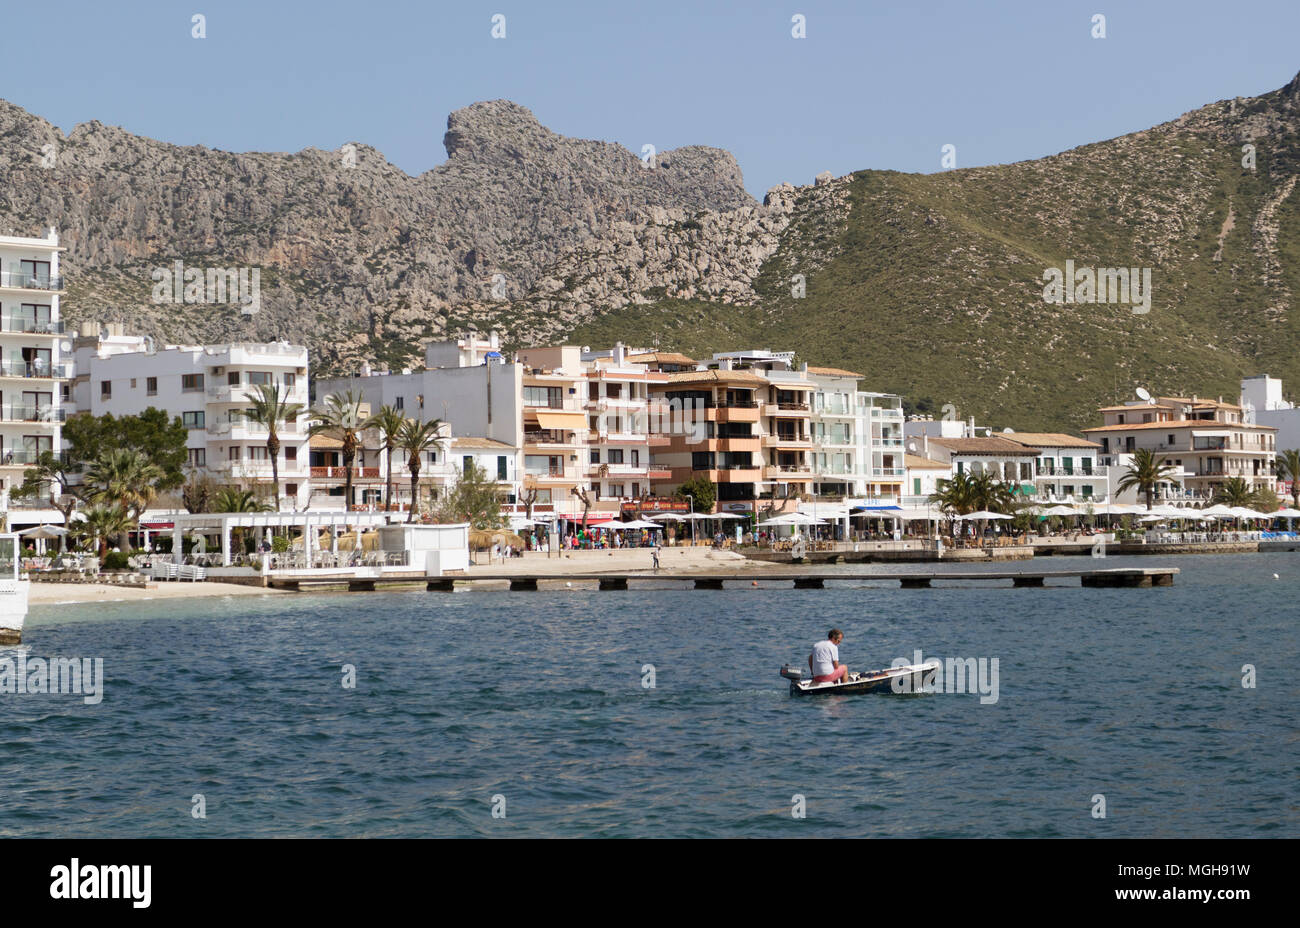 Port of Pollenca, Mallorca, Spain. 2018.  Shops, apartments and hotels overlookingBay of Pollensa. - Stock Image